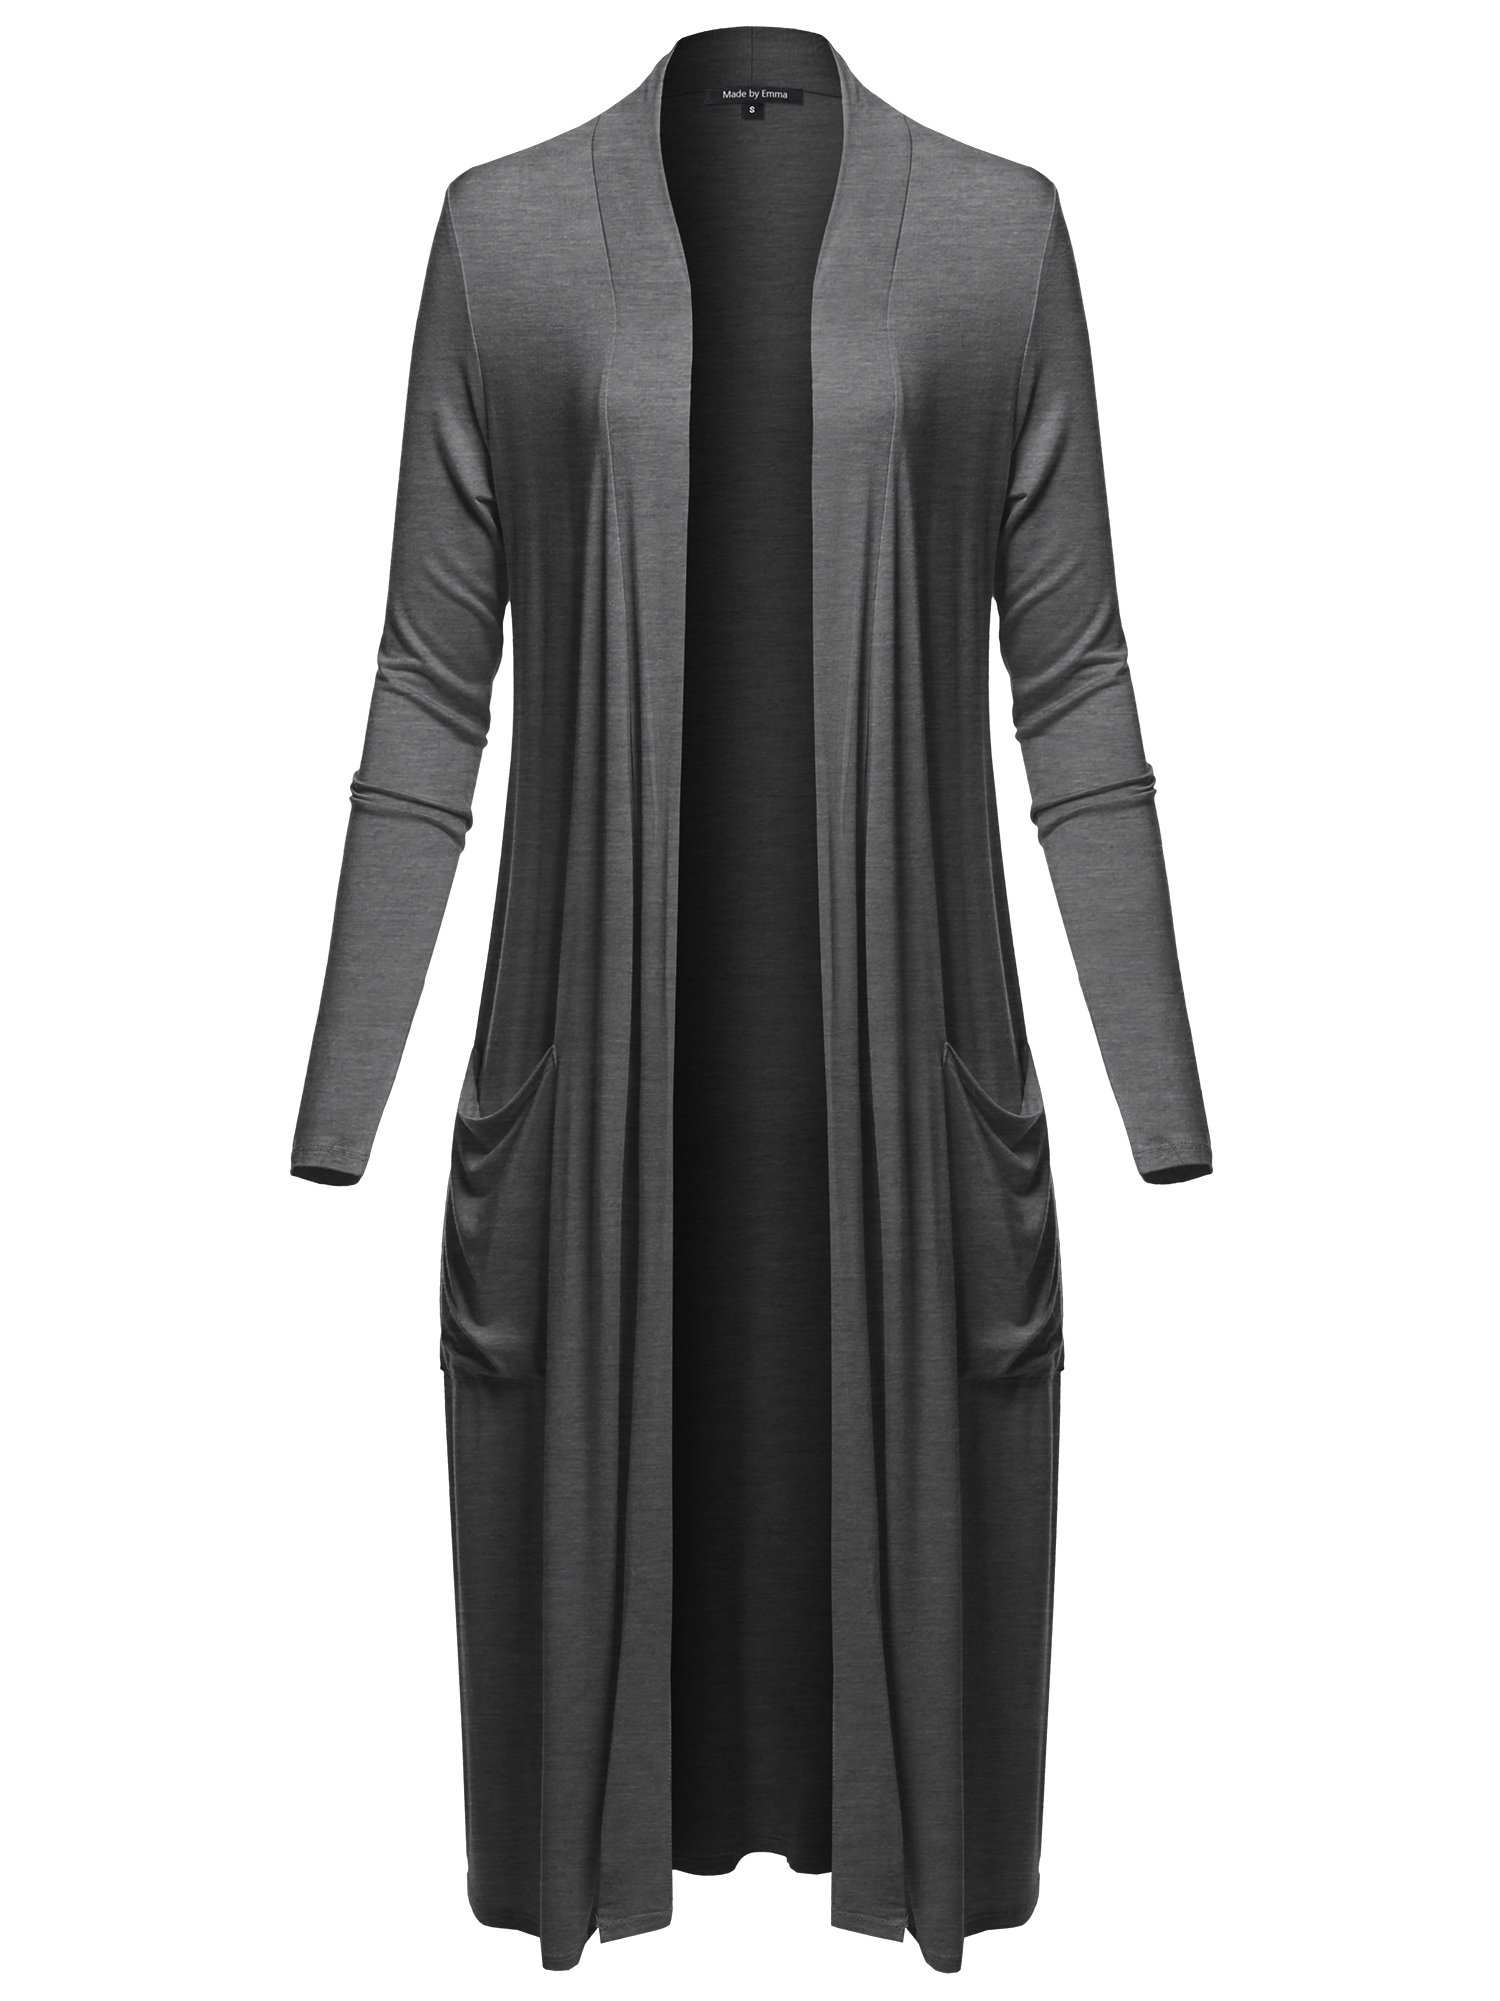 Made by Emma Long Sleeve Side Pockets Midi Length Open Front Cardigan Charcoal Grey L